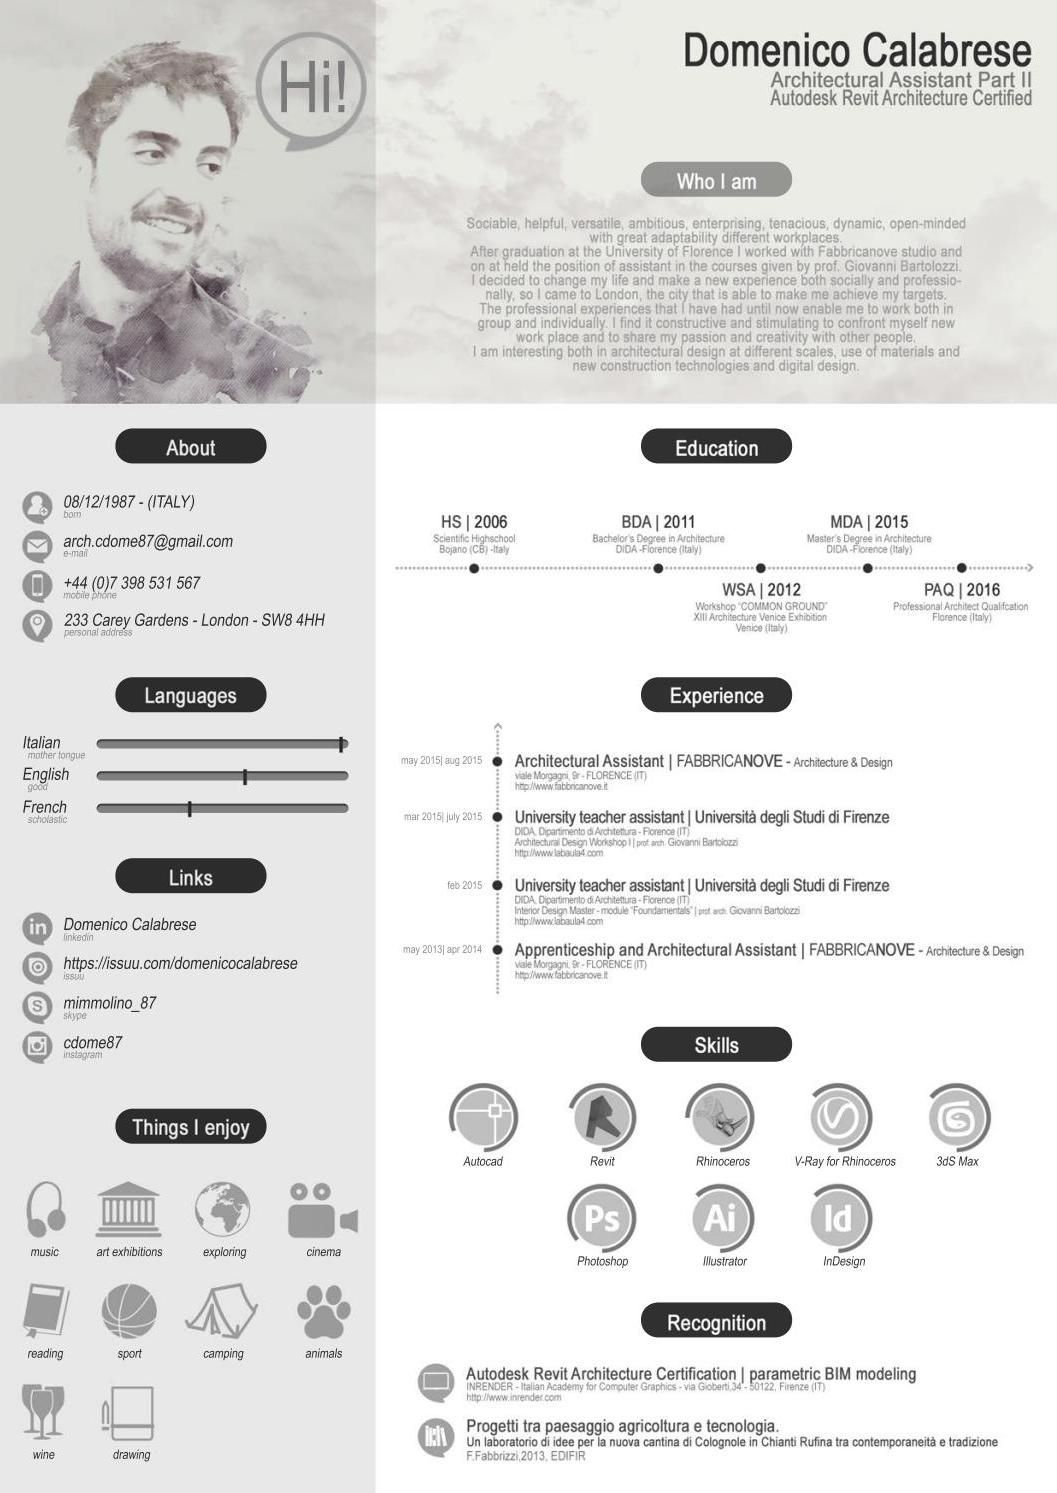 domenico calabrese architecture cv james yuan pinterest resume